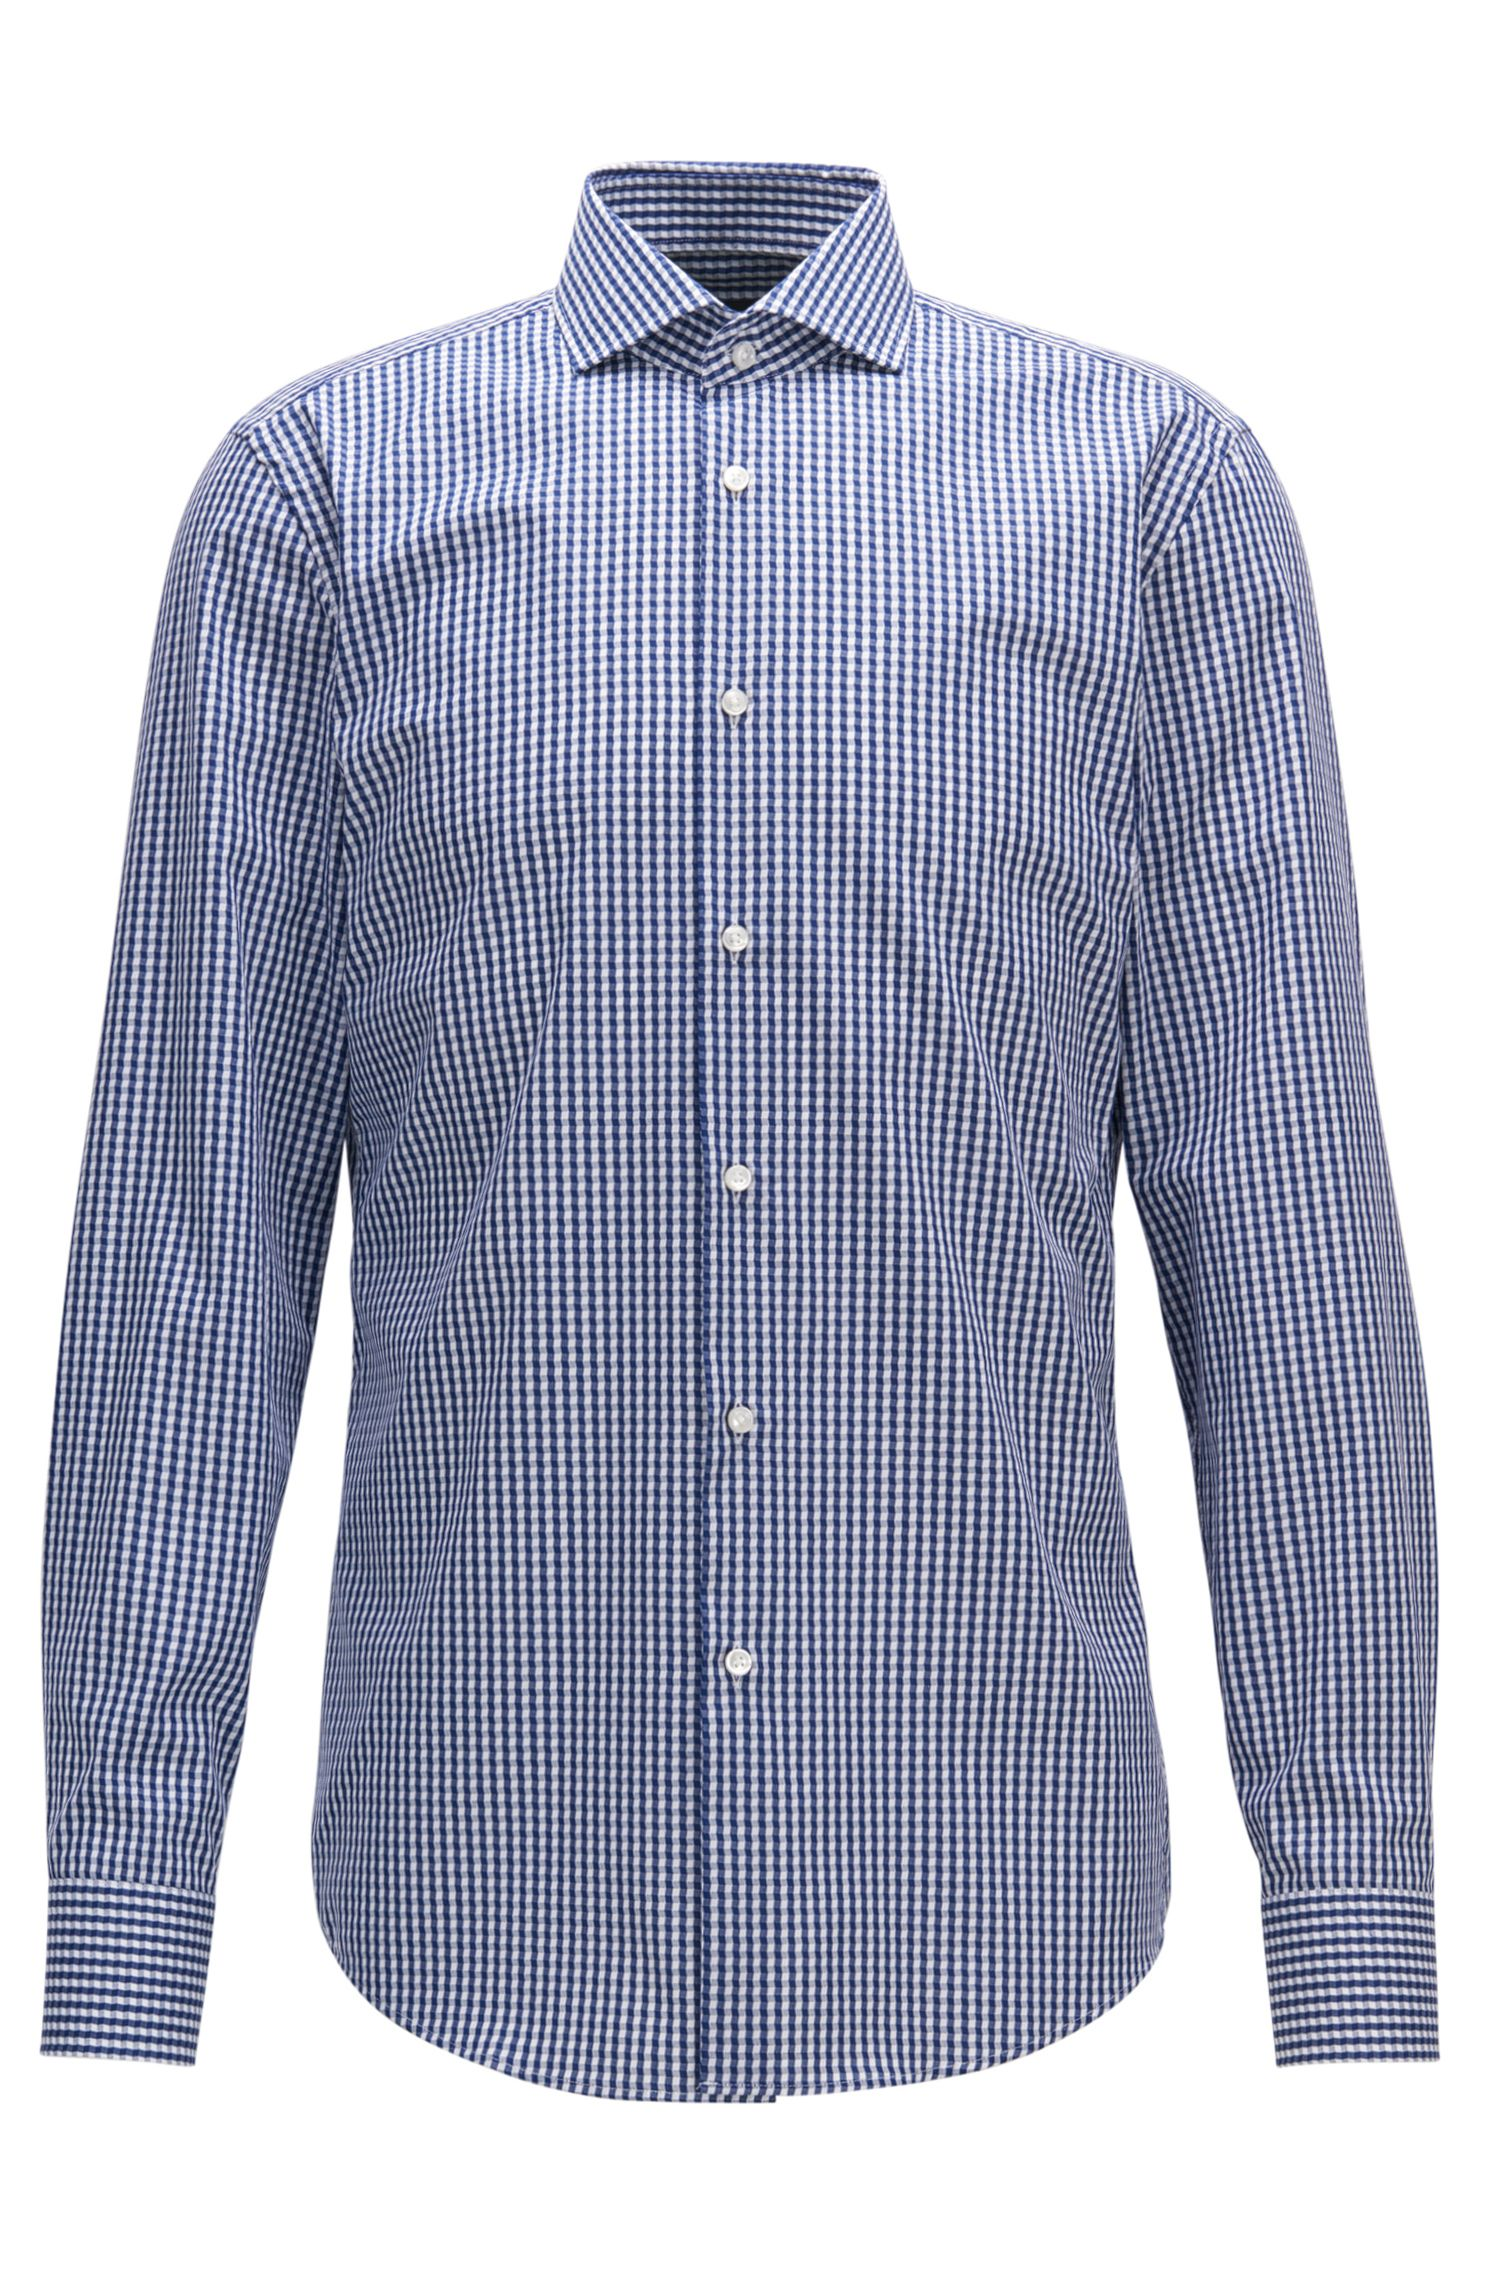 Irregular Gingham Cotton Dress Shirt, Slim Fit | Jason